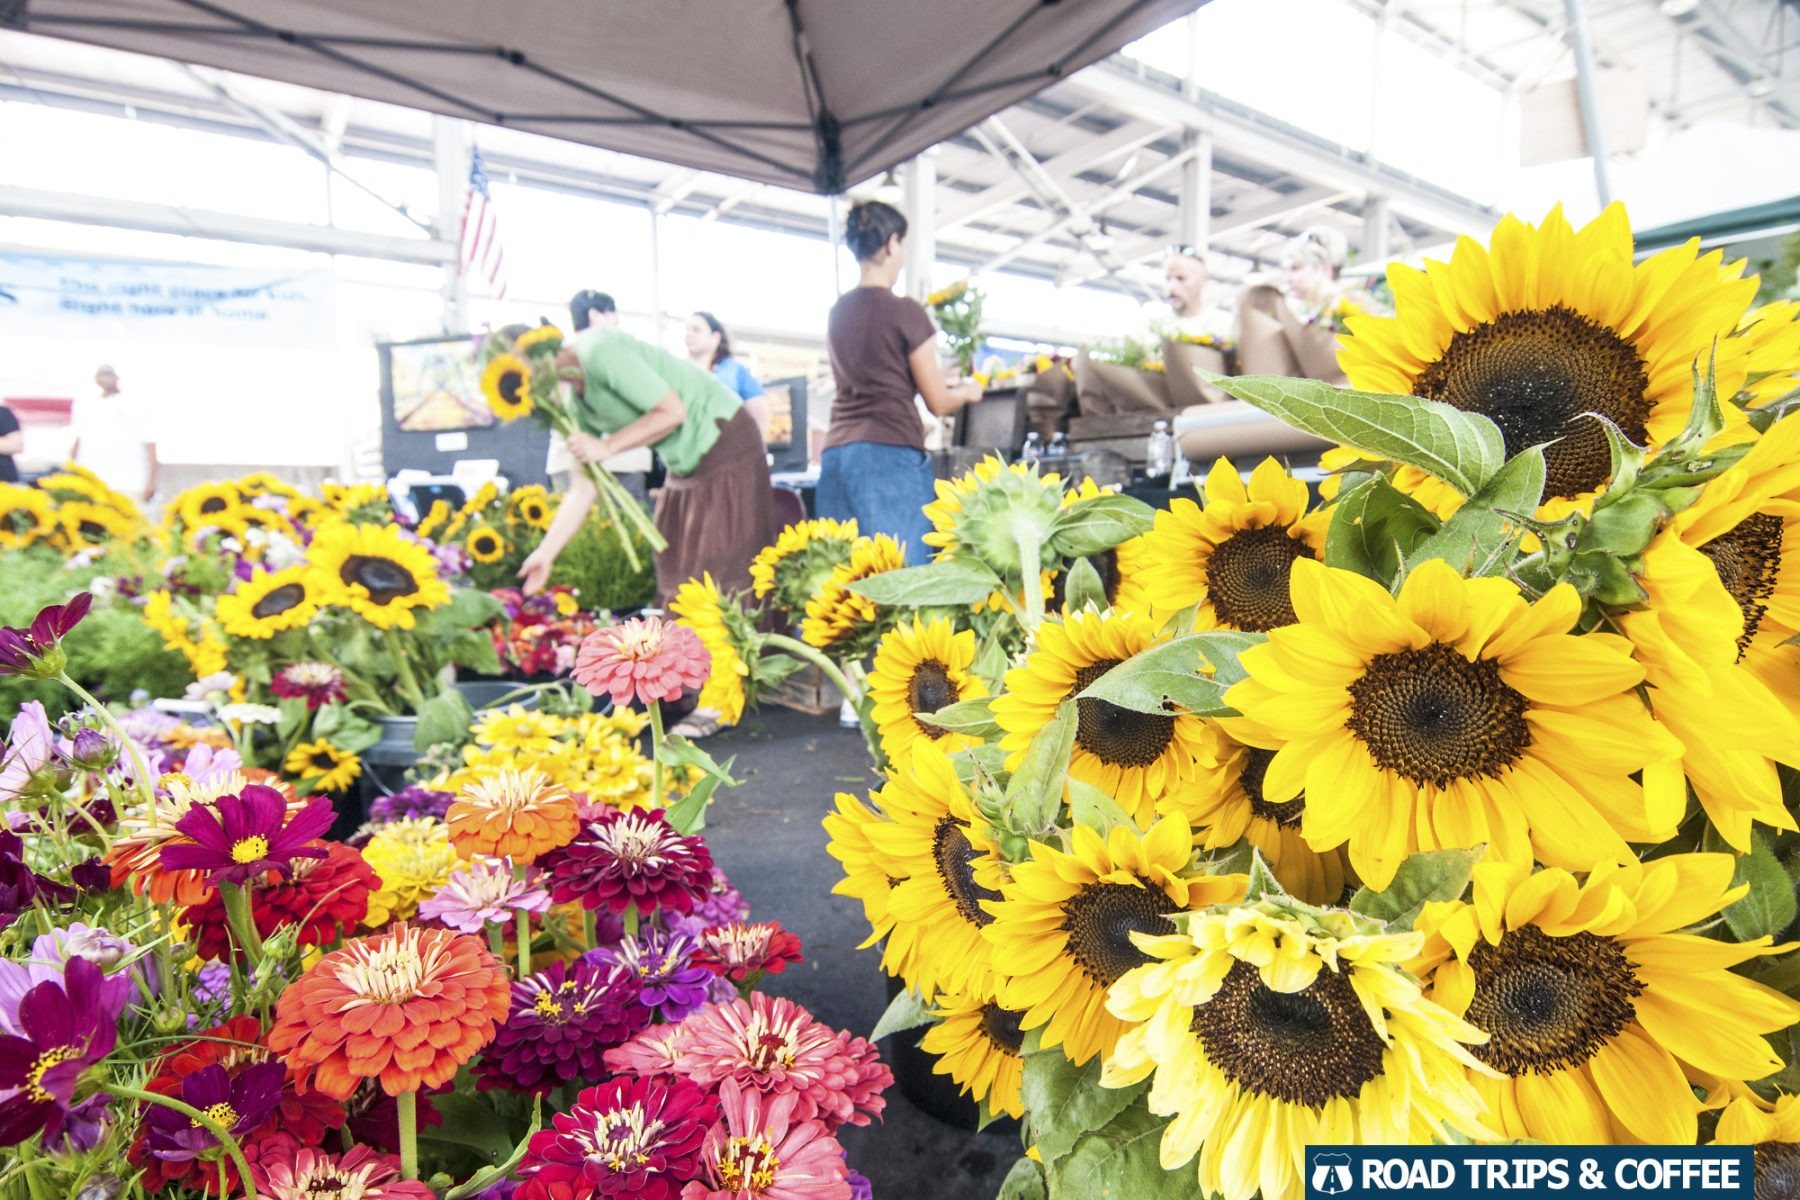 Colorful flowers for sale at the Chattanooga Market in Chattanooga, Tennessee